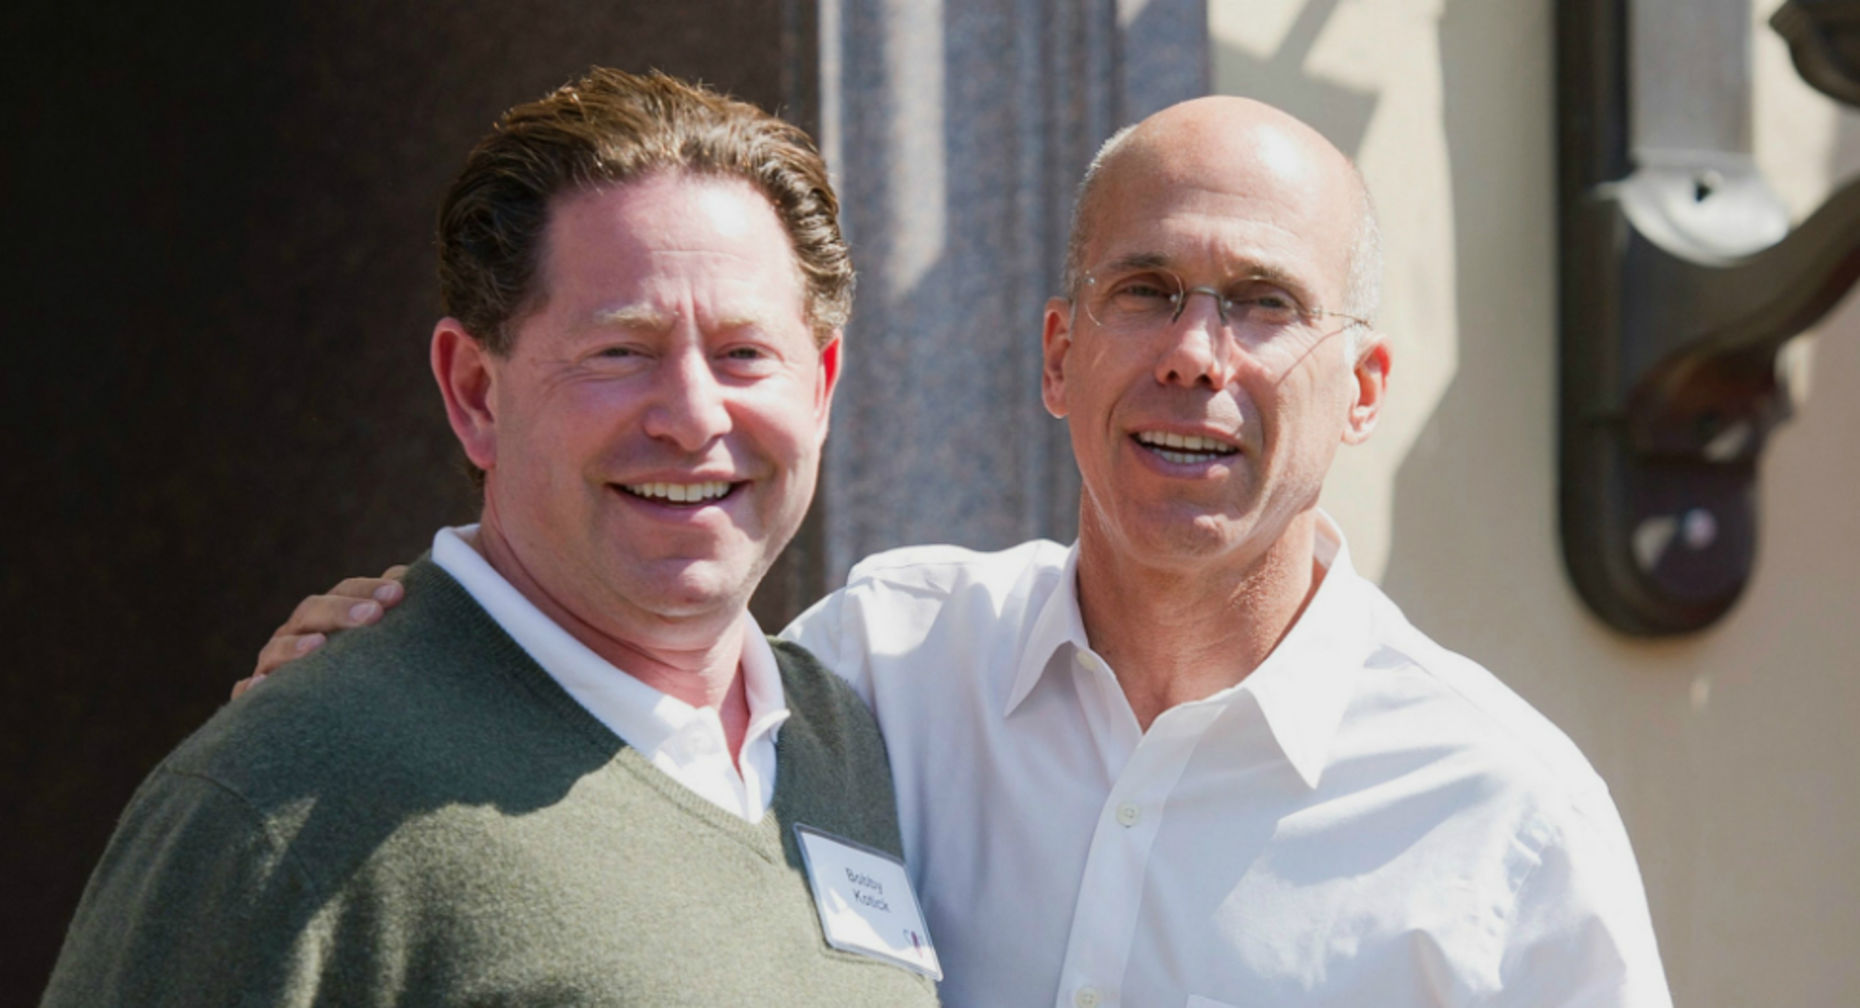 Activision CEO Bobby Kotick with DreamWorks Animation CEO Jeffrey Katzenberg. Photo by Bloomberg.